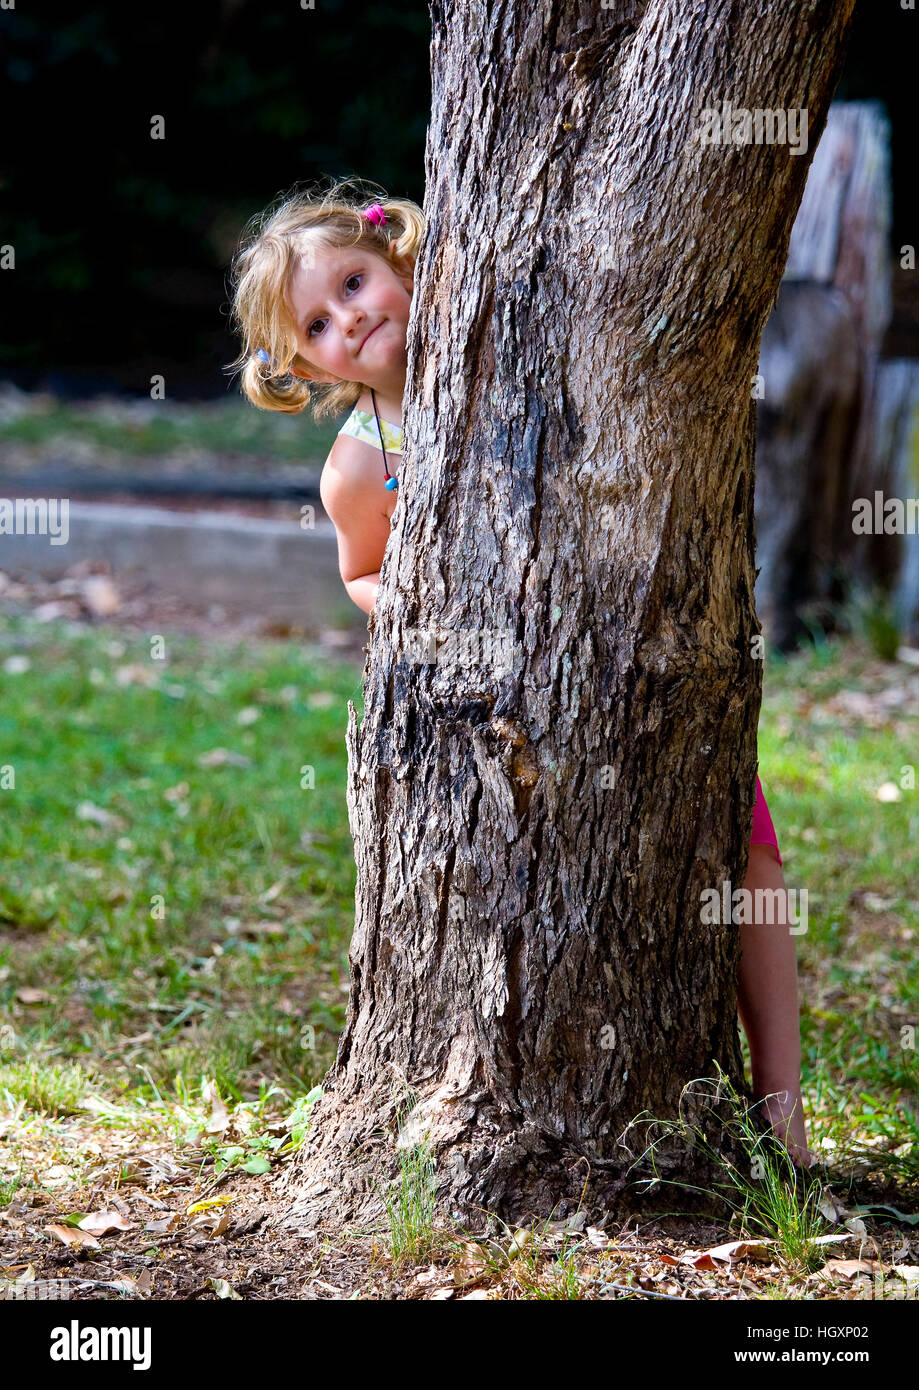 Little girl plays hide and seek - Stock Image